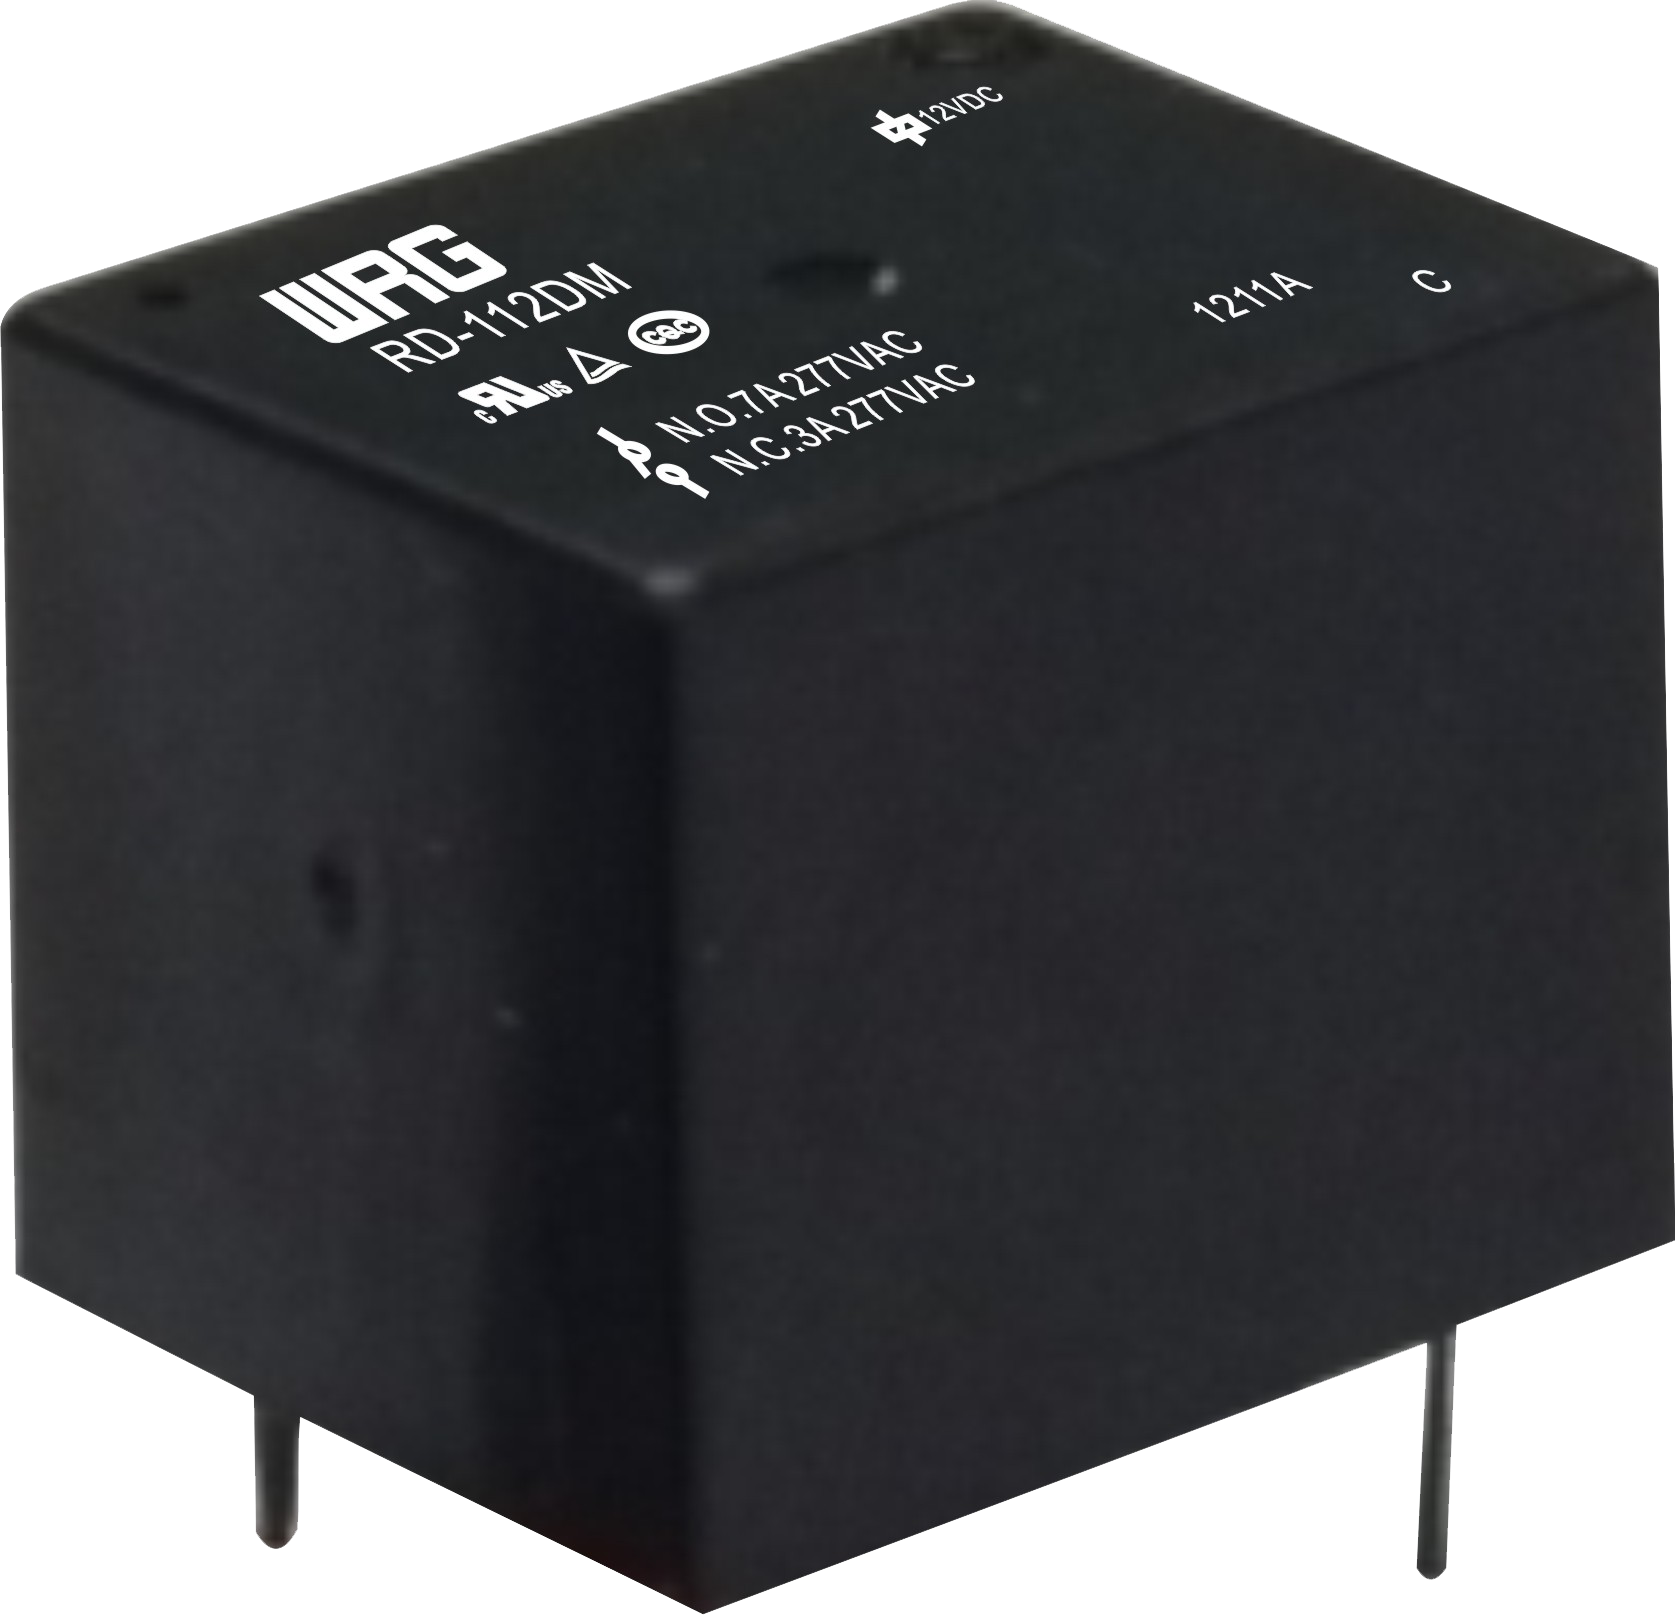 Wrg Industrial Relays World Products Inc Types Of Electrical Relay Pdf C Type